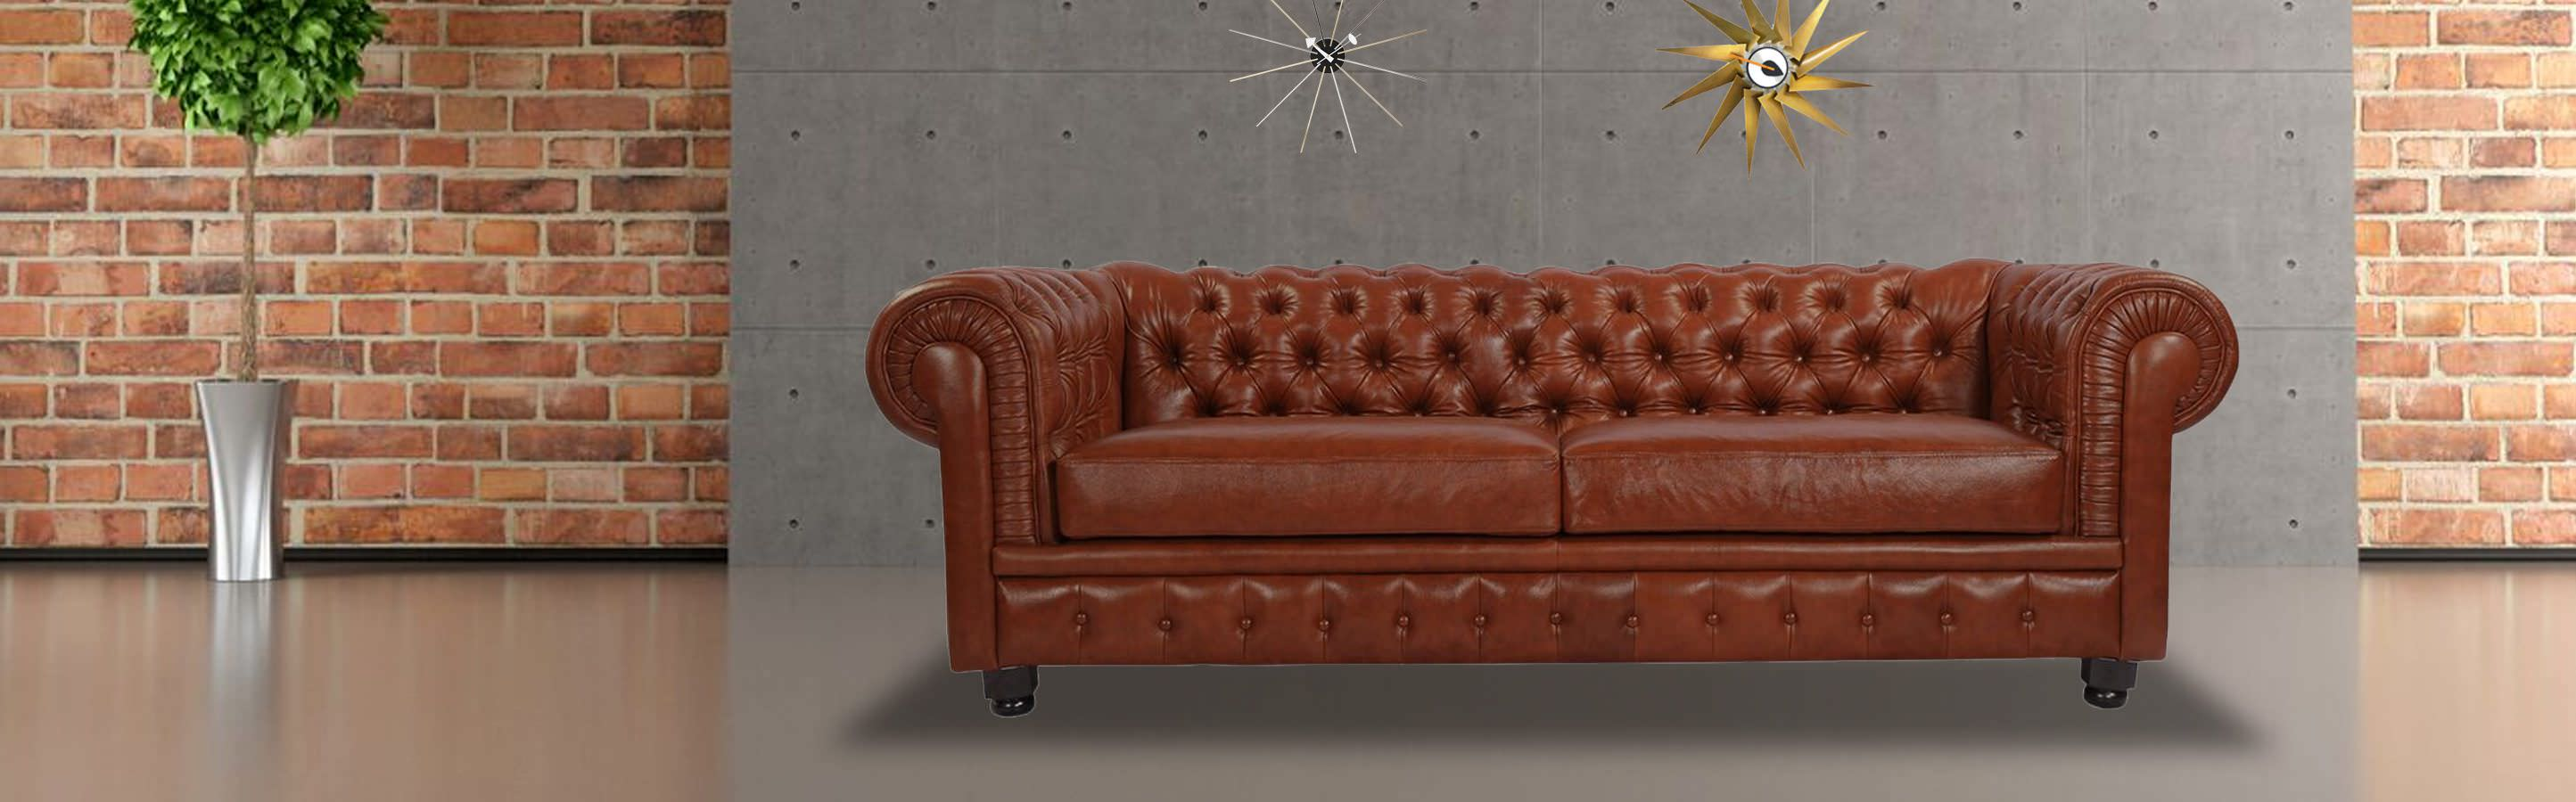 Chesterfield Sofa, Earl Grey